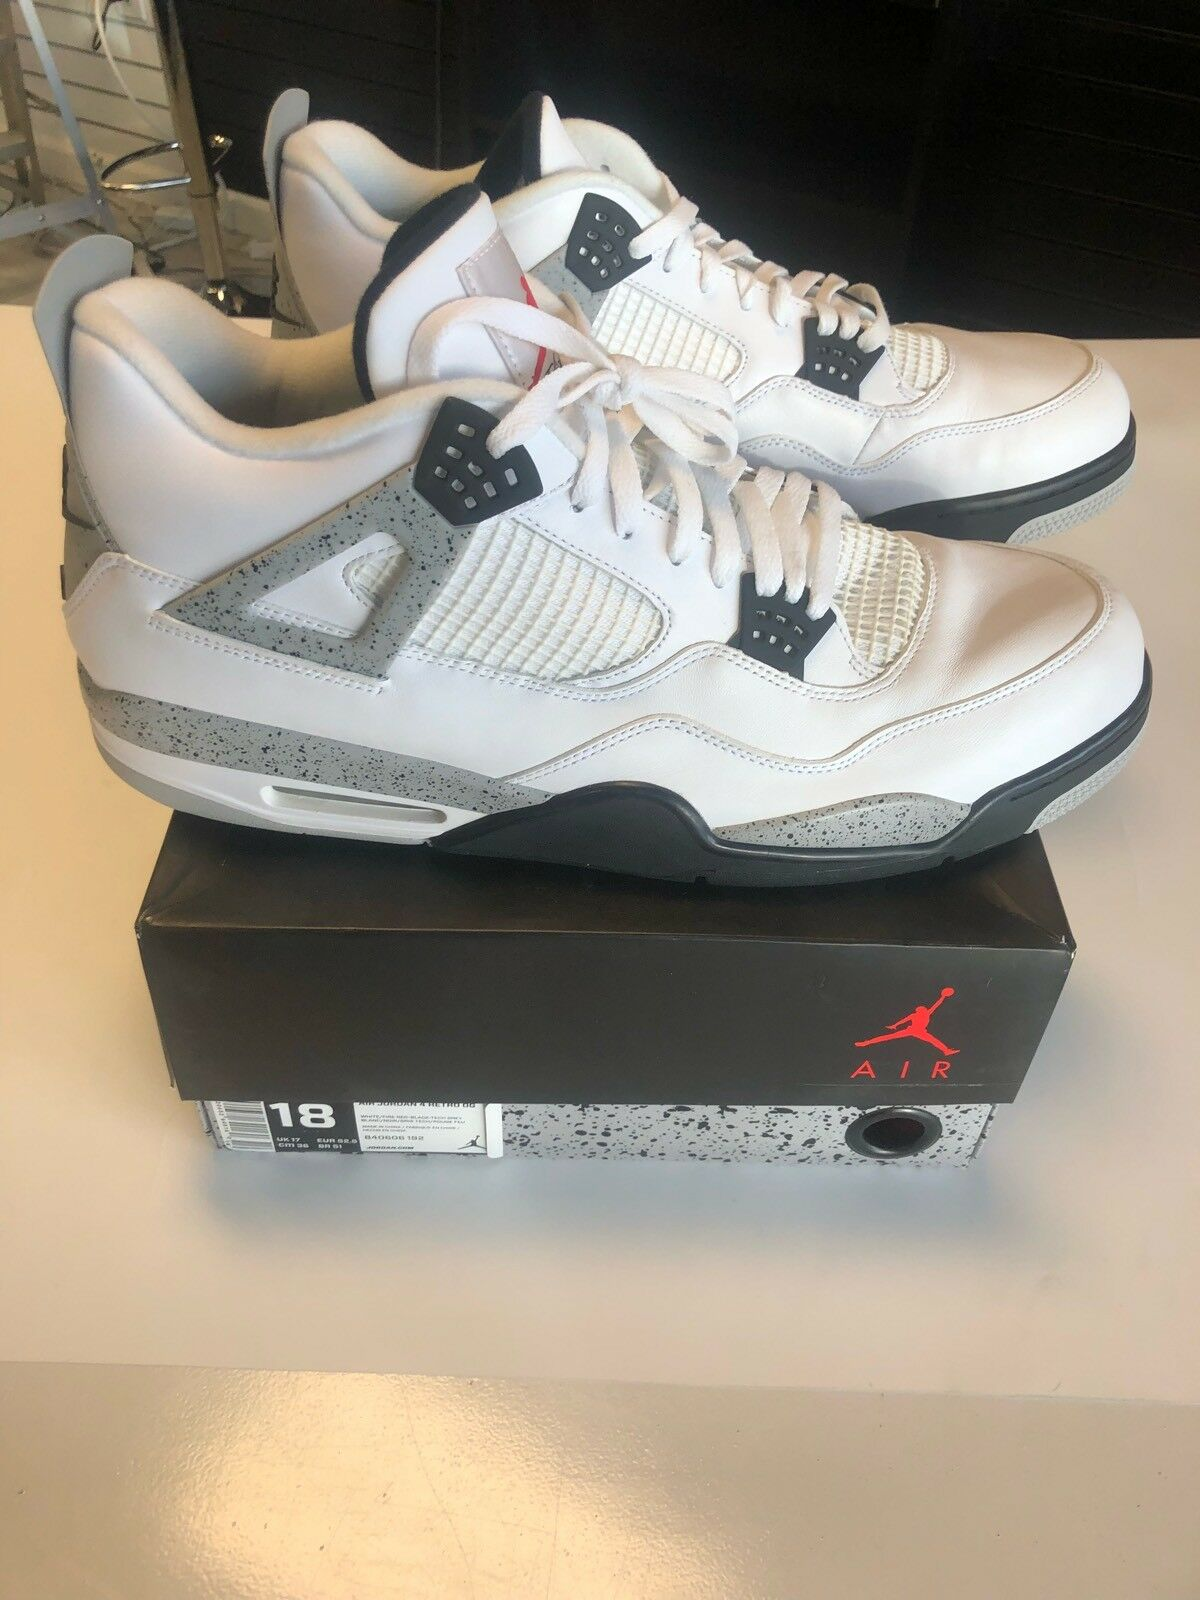 the best attitude 76fb2 55929 Nike Air Jordan Retro 4s IV White Cement Cement Cement 2016 840606-192 DS  Size